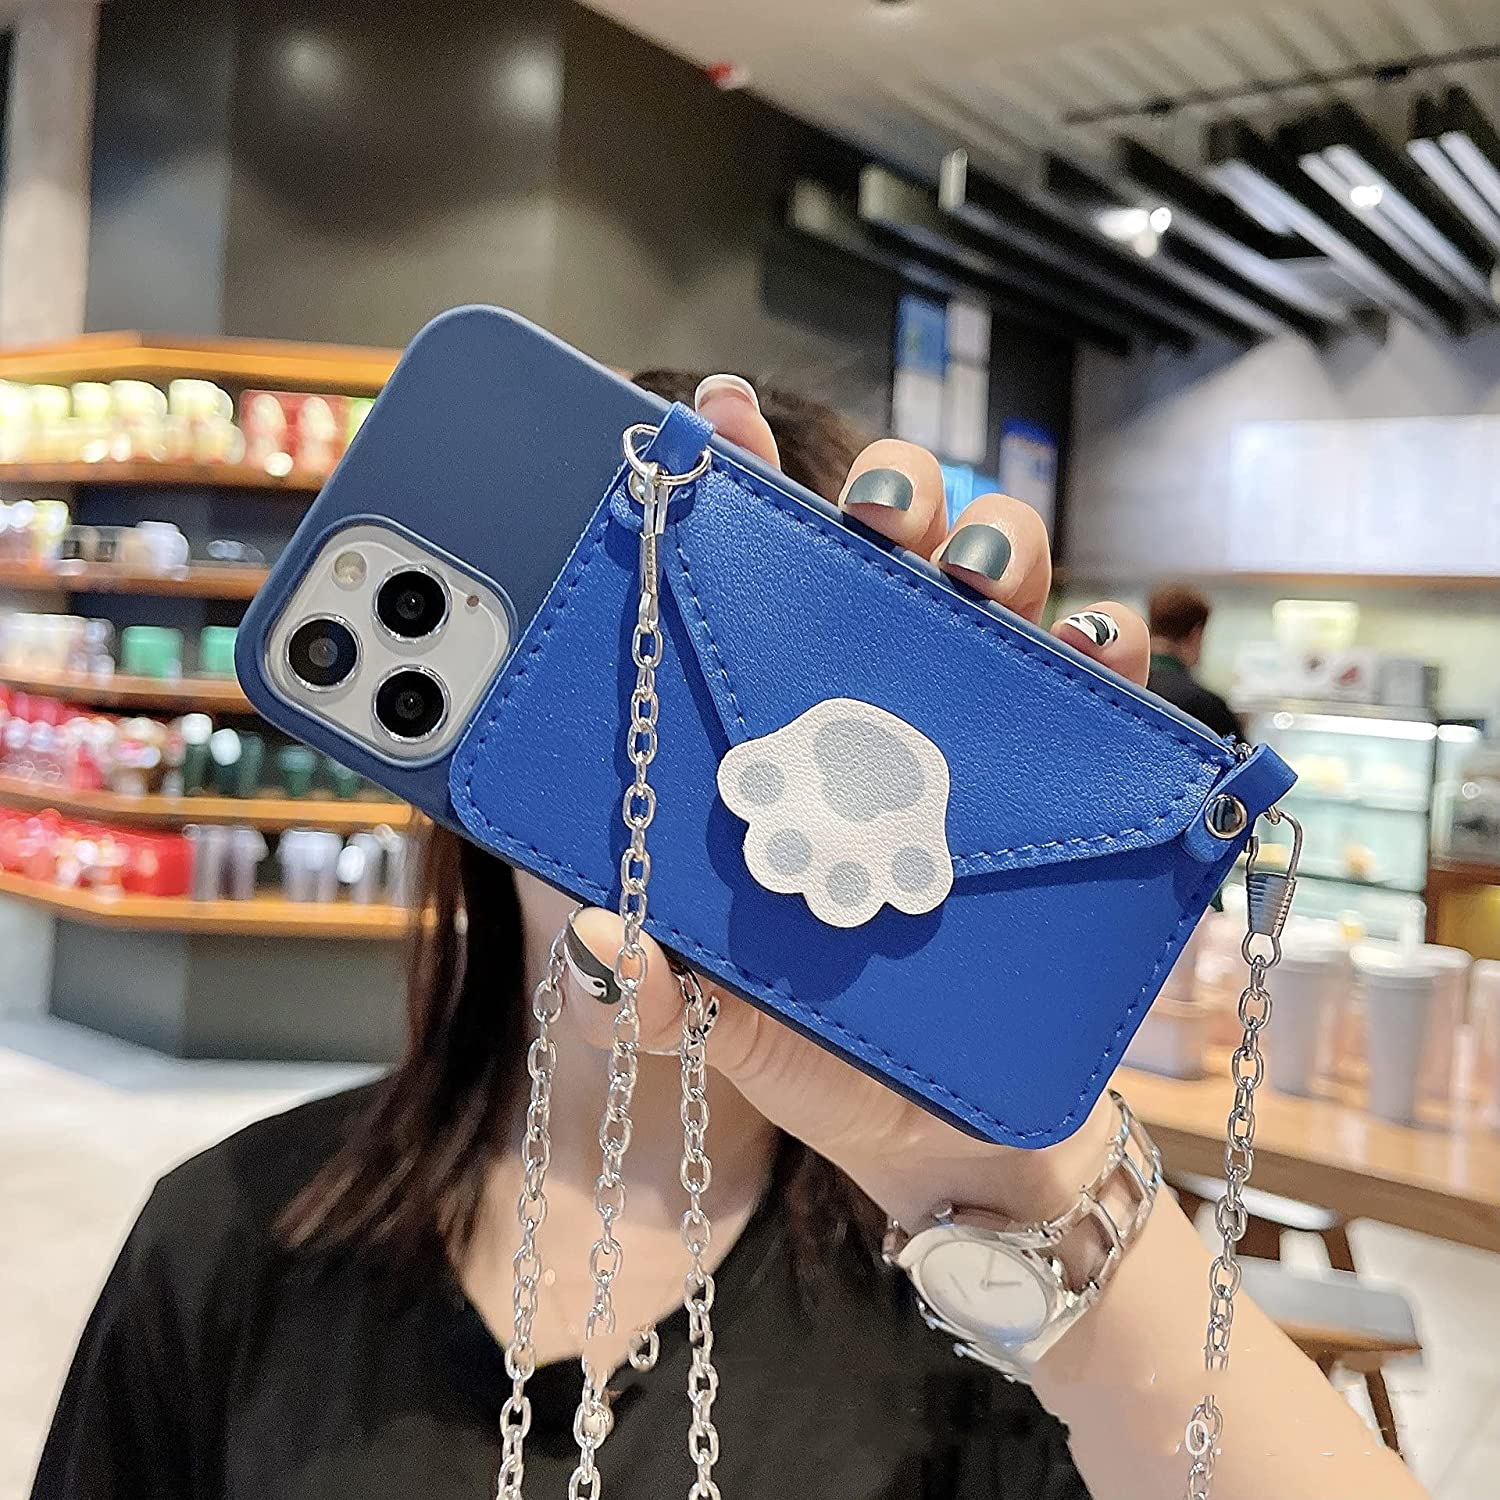 ISYSUII Crossbody Wallet Case for Samsung Galaxy A01 Leather Case Cat Footprint Pattern Cell Phone Purse with Credit Card Holder Lanyard Magnetic Soft TPU Cover for Women Girls,Blue